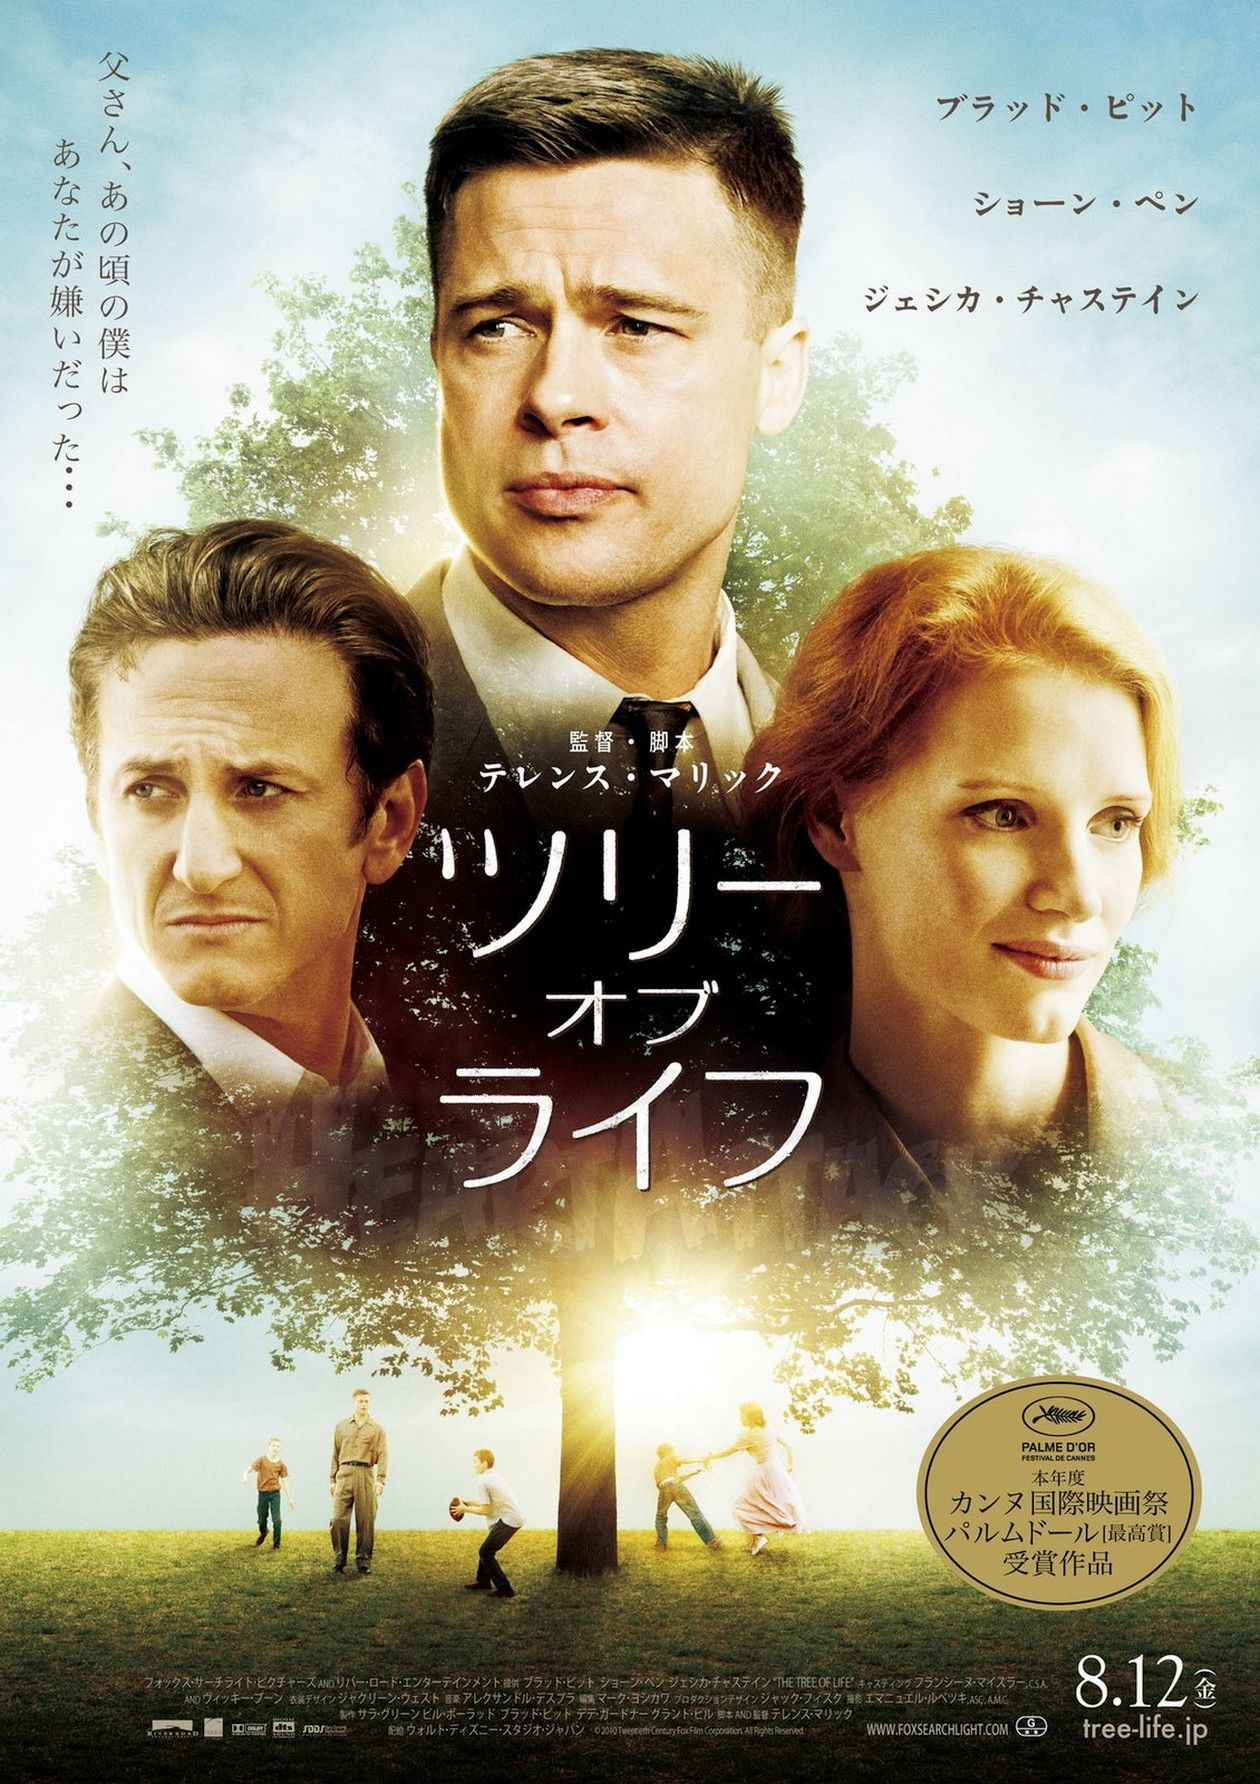 Jessica Chastain actress | The Tree of Life / Terrence Malick 2011 Movie Poster Affiche de film